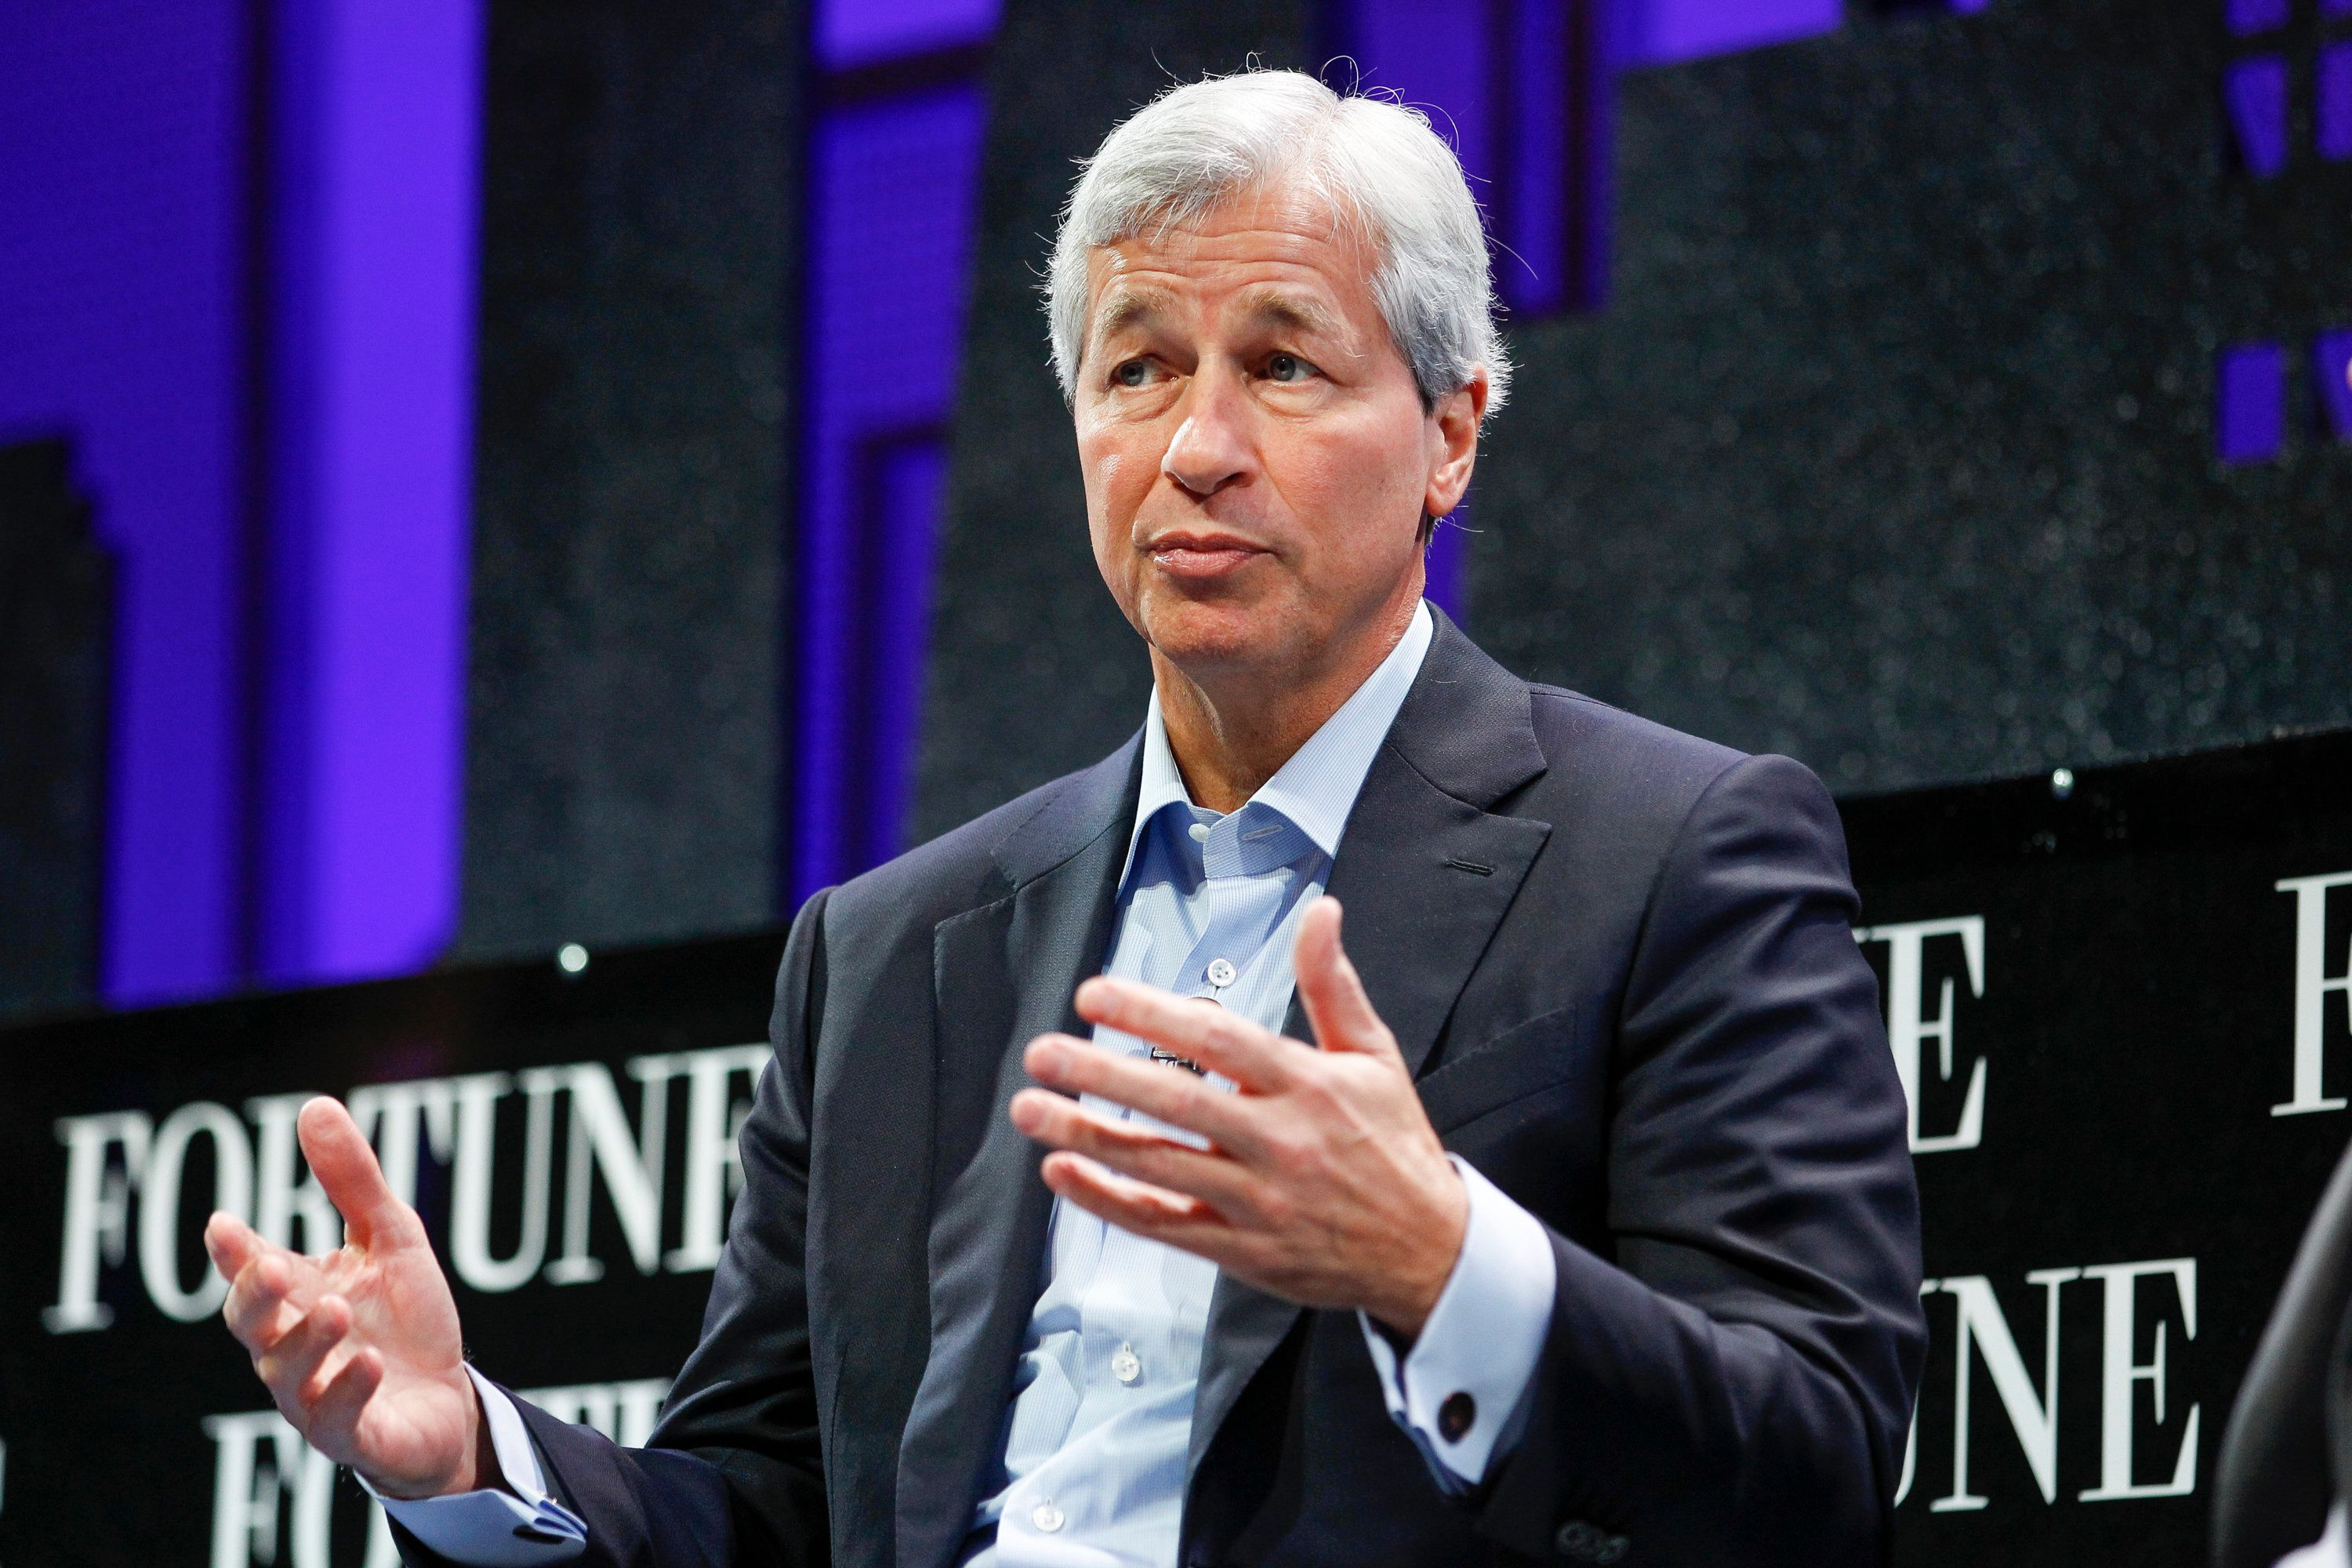 SAN FRANCISCO, CA - NOVEMBER 04:  Jamie Dimon speaks during the Fortune Global Forum - Day 3 at the Fairmont Hotel on November 4, 2015 in San Francisco, California.  (Photo by Kimberly White/Getty Images for Fortune)